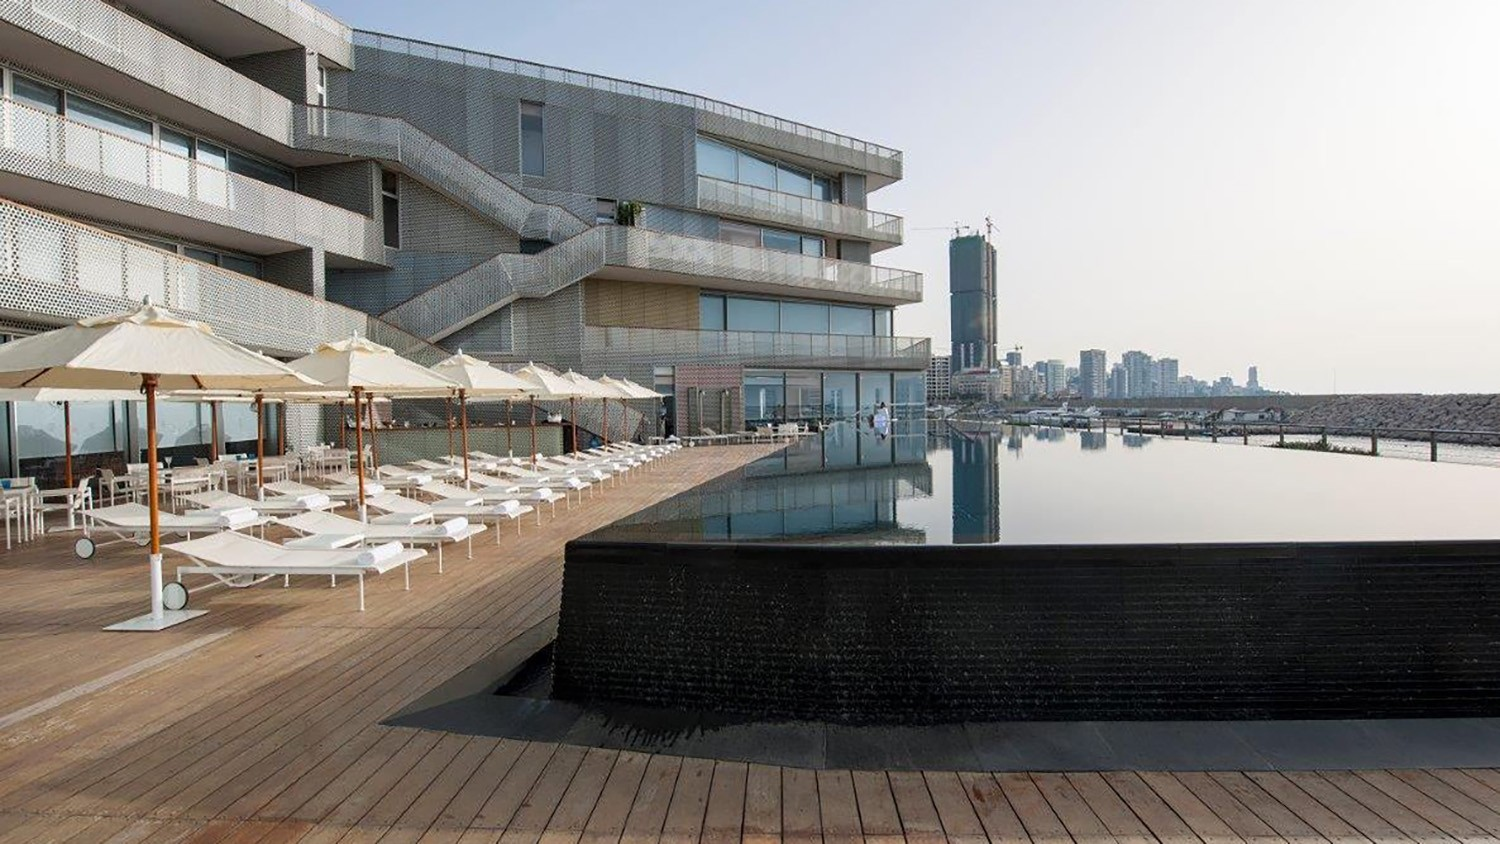 https://stevenholl.sfo2.digitaloceanspaces.com/uploads/projects/project-images/LeYachtClub_Beirut_Pooldeck_7_WH.jpg